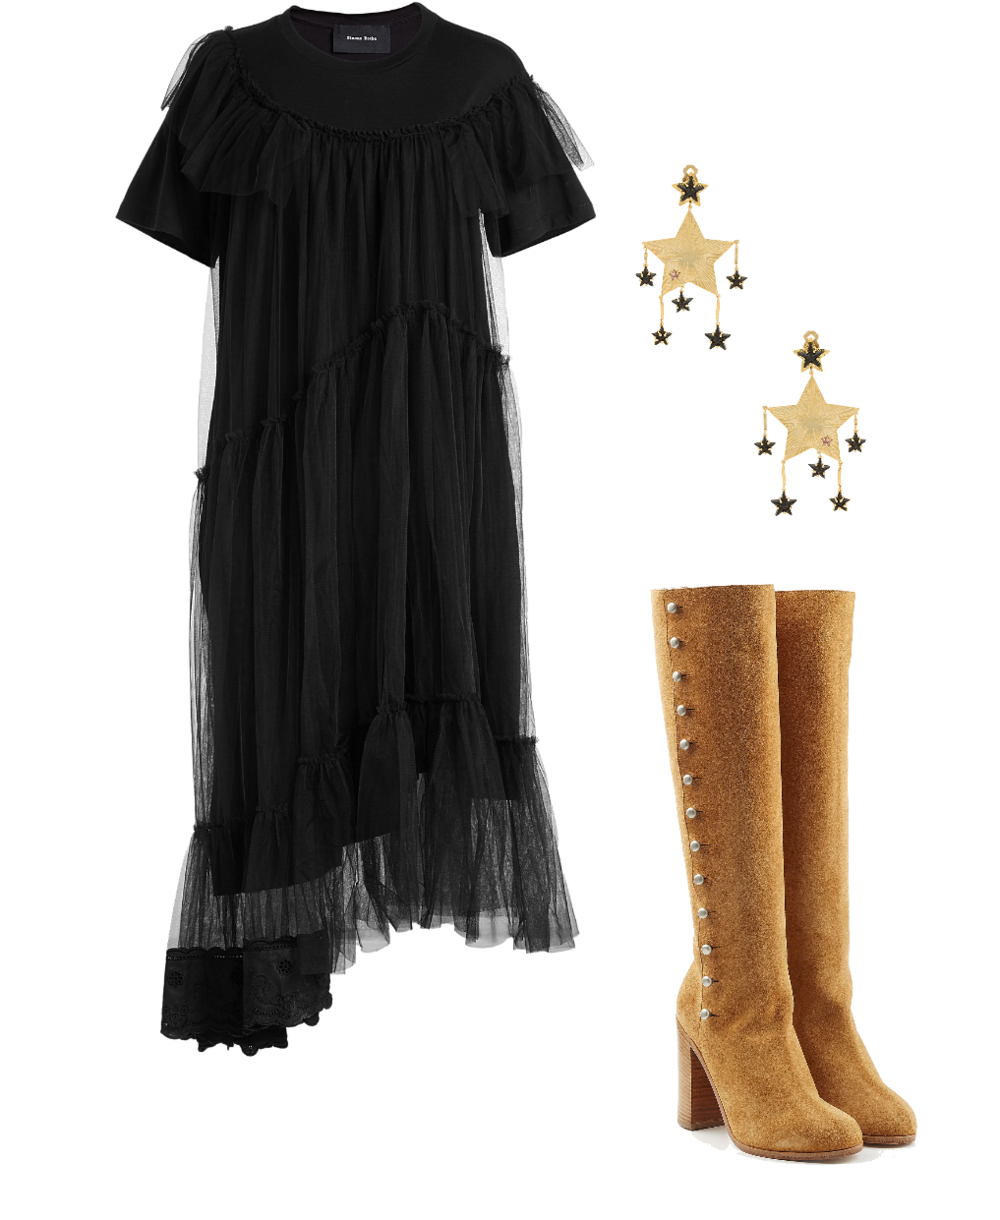 This look is a take on Stevie's iconic gothic style--a black ethereal dress paired with celestial earrings are chic and edgy, and a pair of heeled, knee-high boots in a contrasting suede finish the look in a classic Stevie way. No matter her ensemble, knee-high boots are often a big component.   Stevie is also known for mixing and matching textiles and textures. If there's one thing we can take away from her style, it's to stop stressing about being so matchy-matchy!